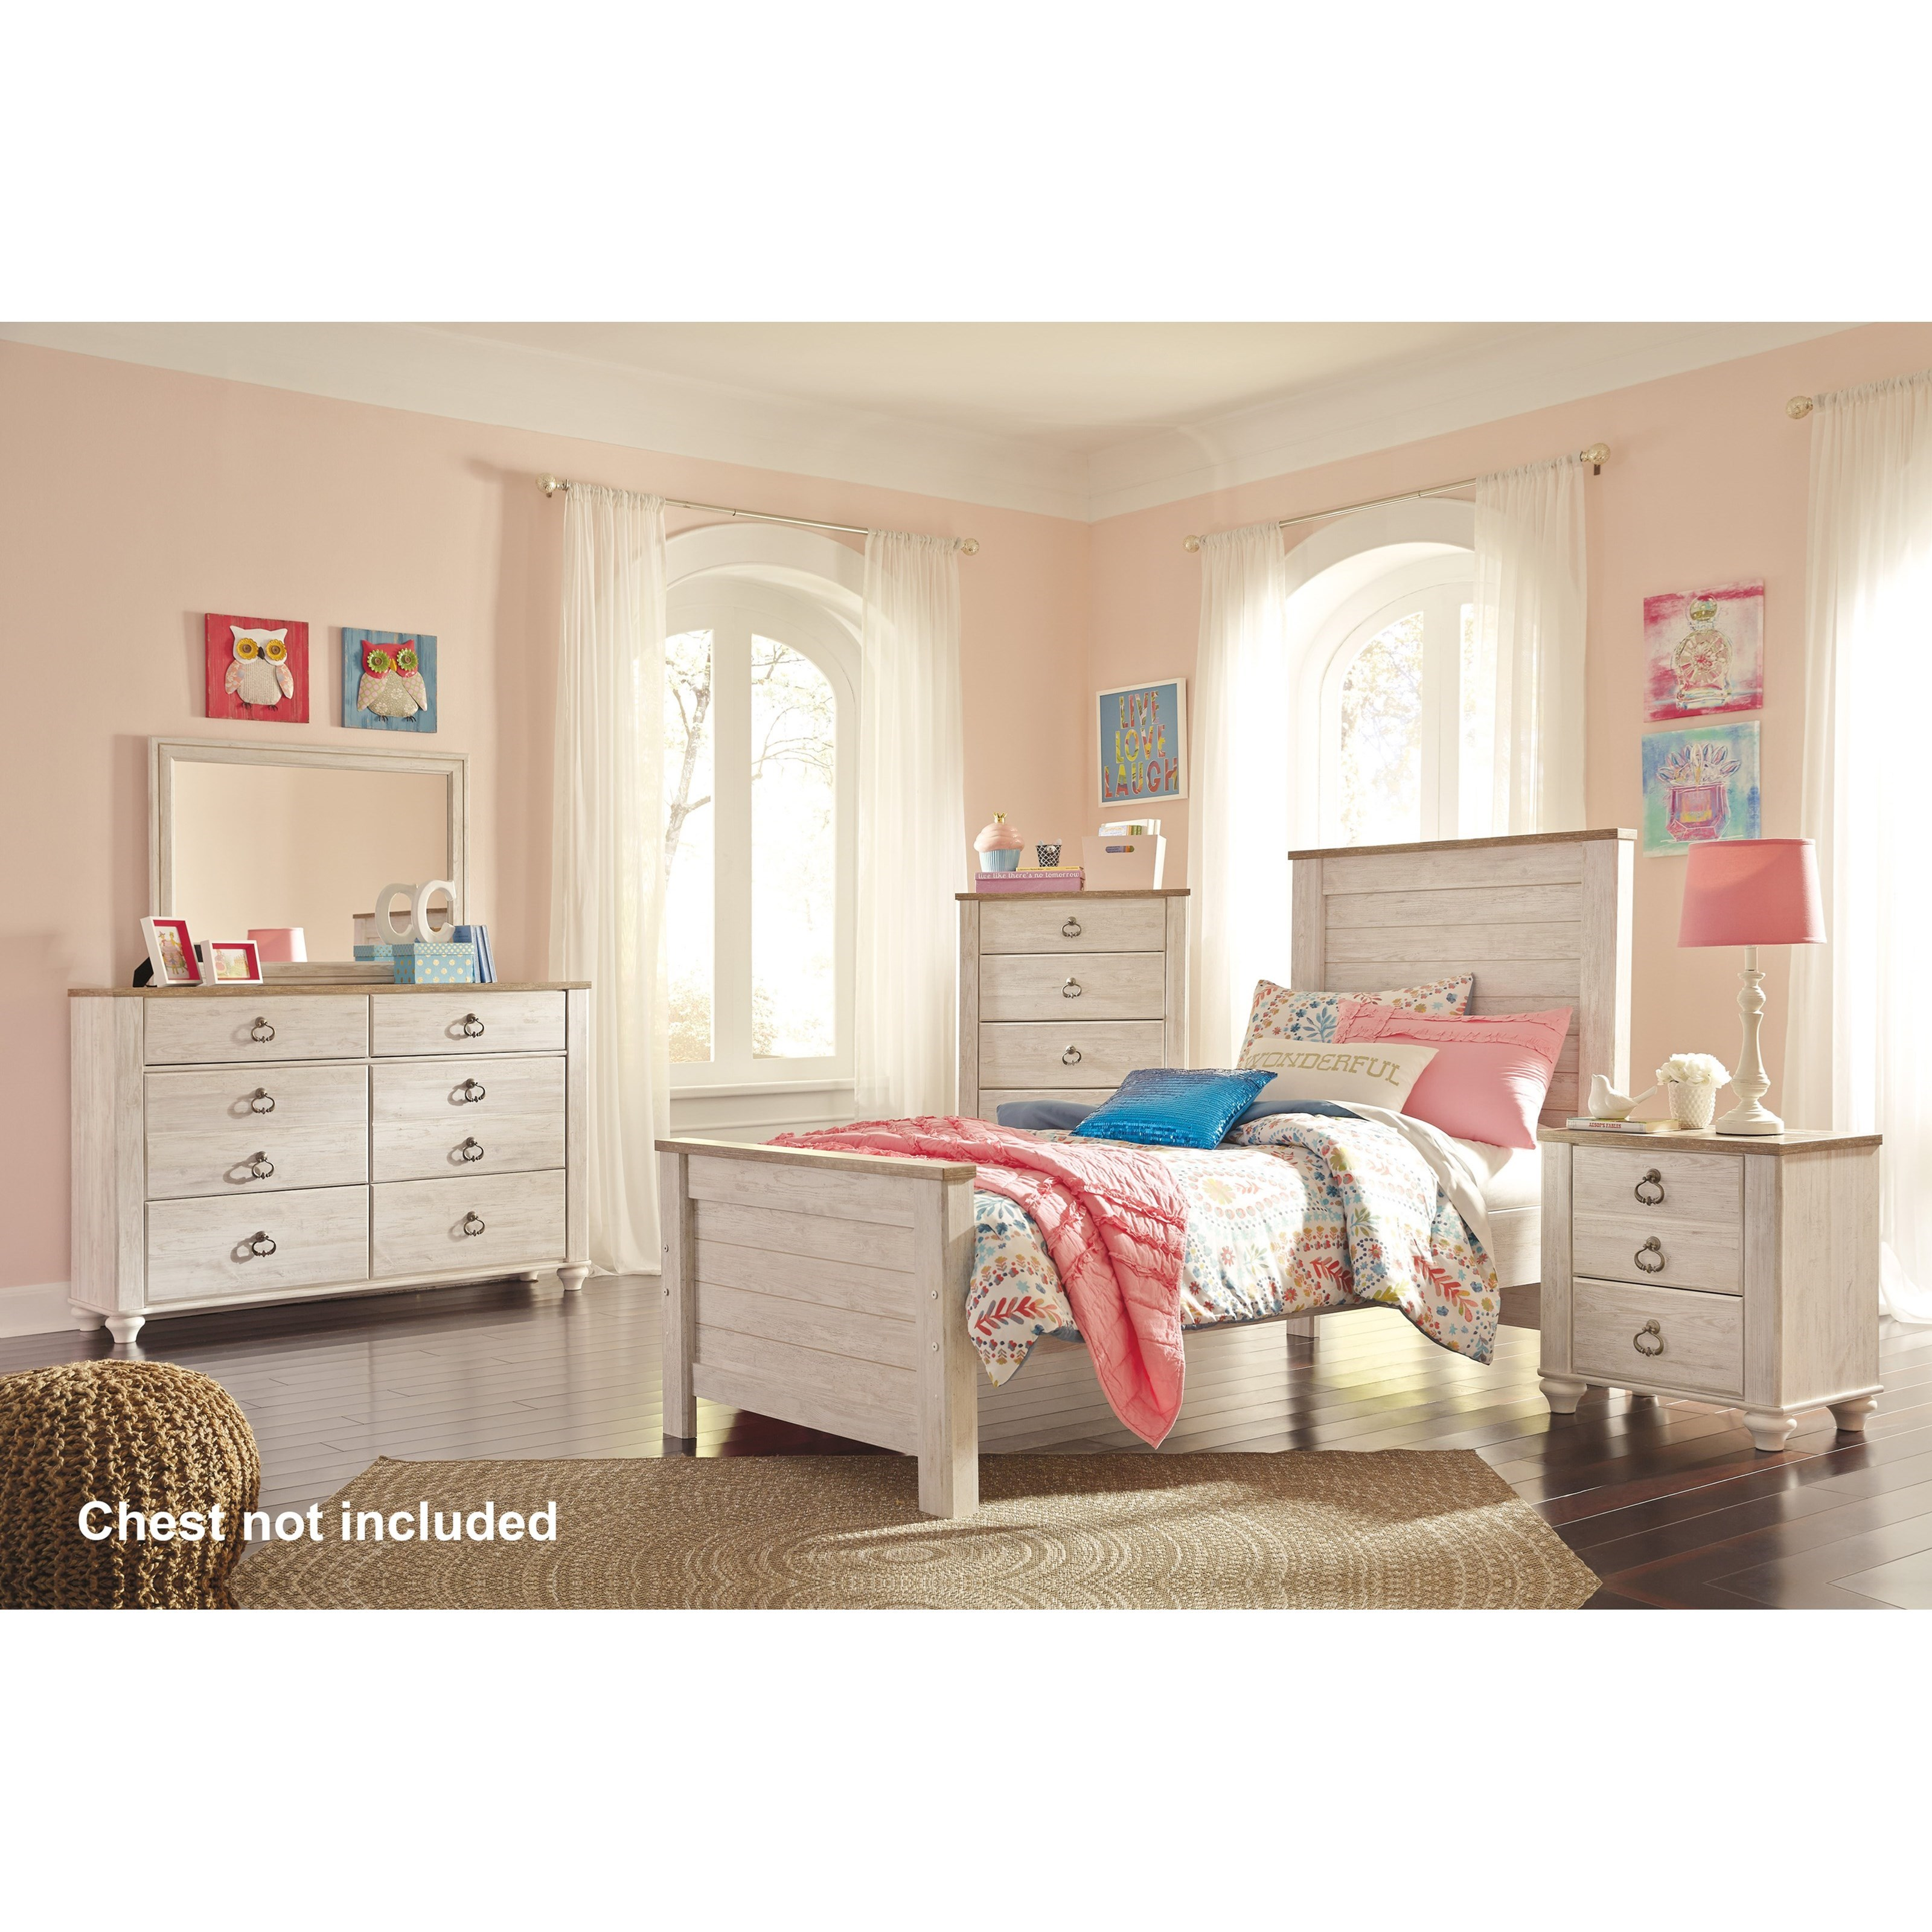 Willowton Twin Bedroom Group by Signature Design by Ashley at Sparks HomeStore